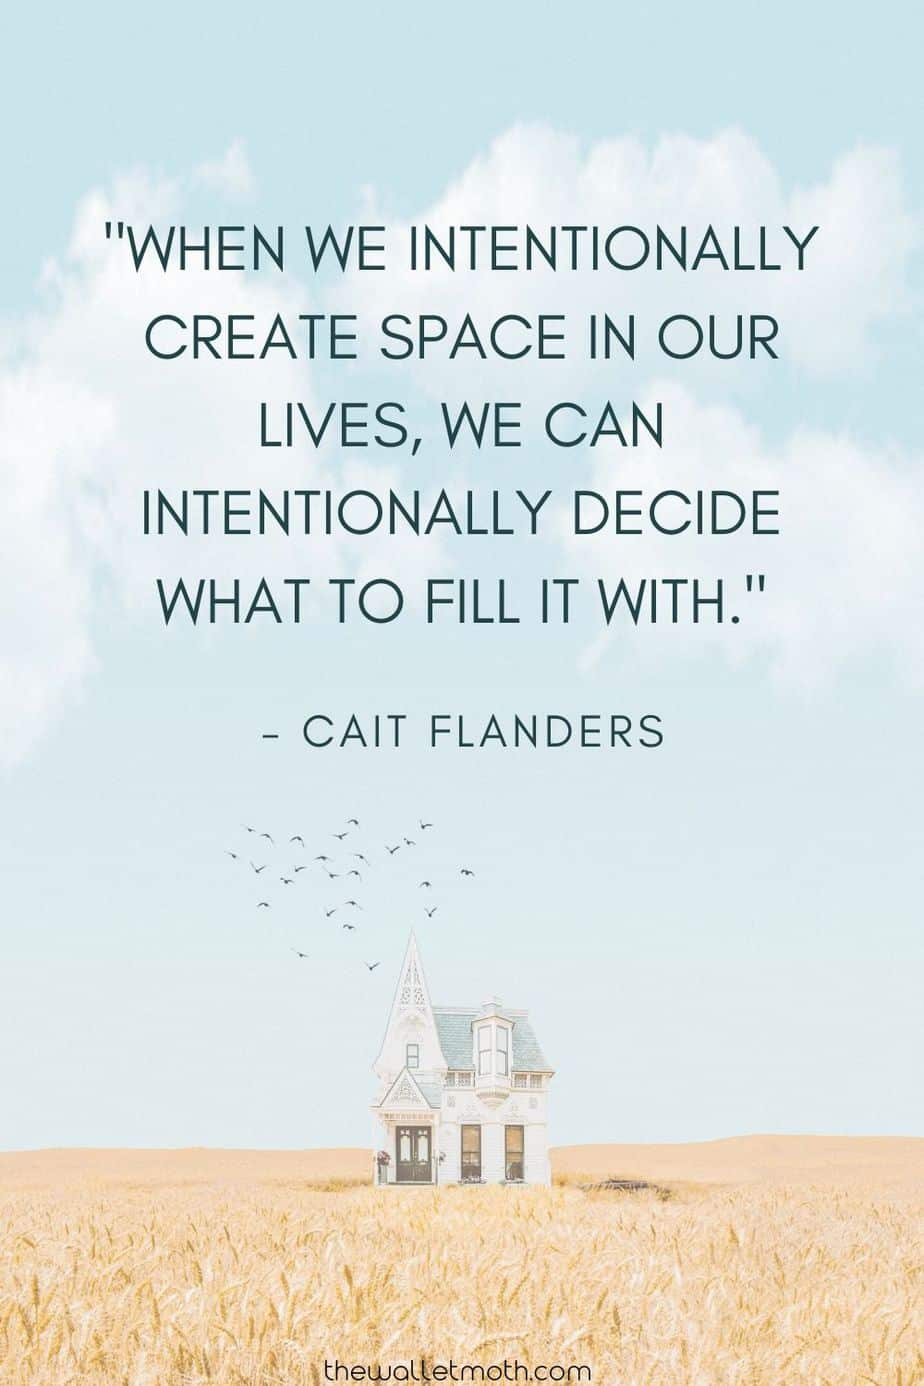 """When we intentionally create space in our lives, we can intentionally decide what to fill it with."" - Cait Flanders"